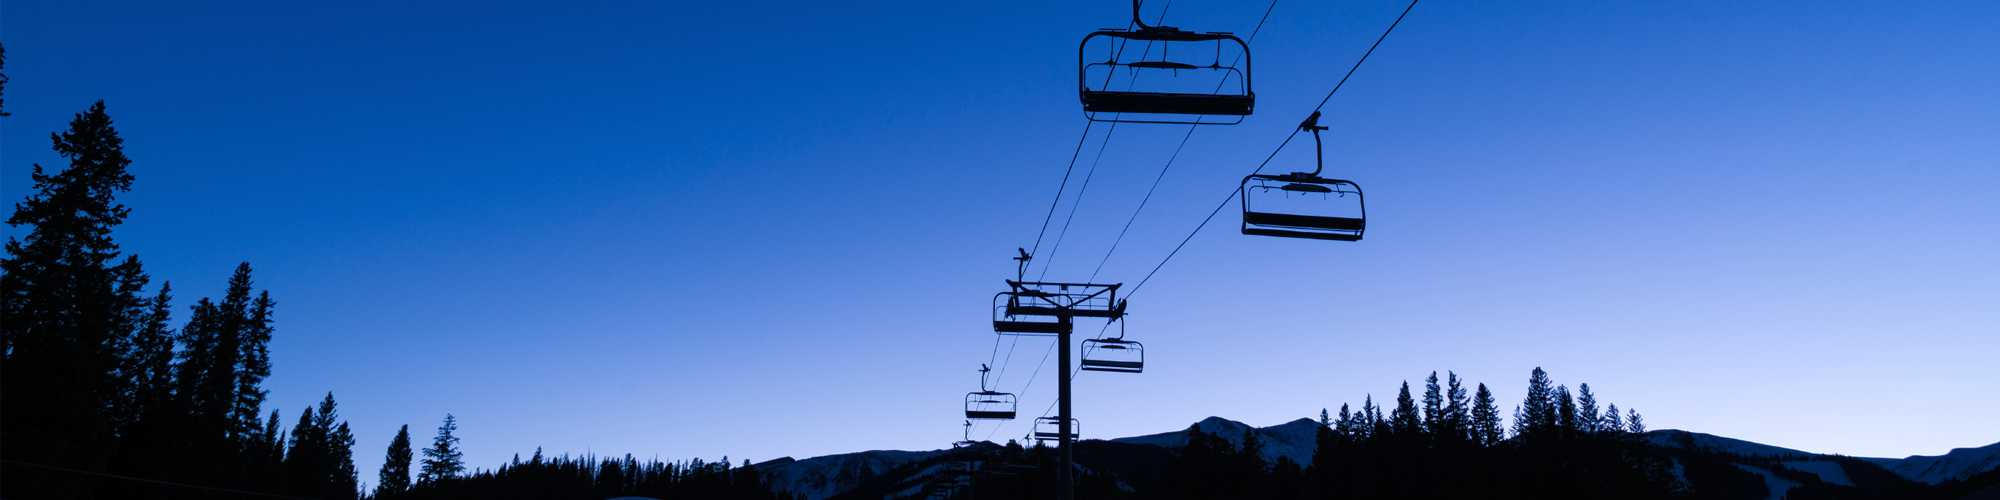 Chairlift at Night